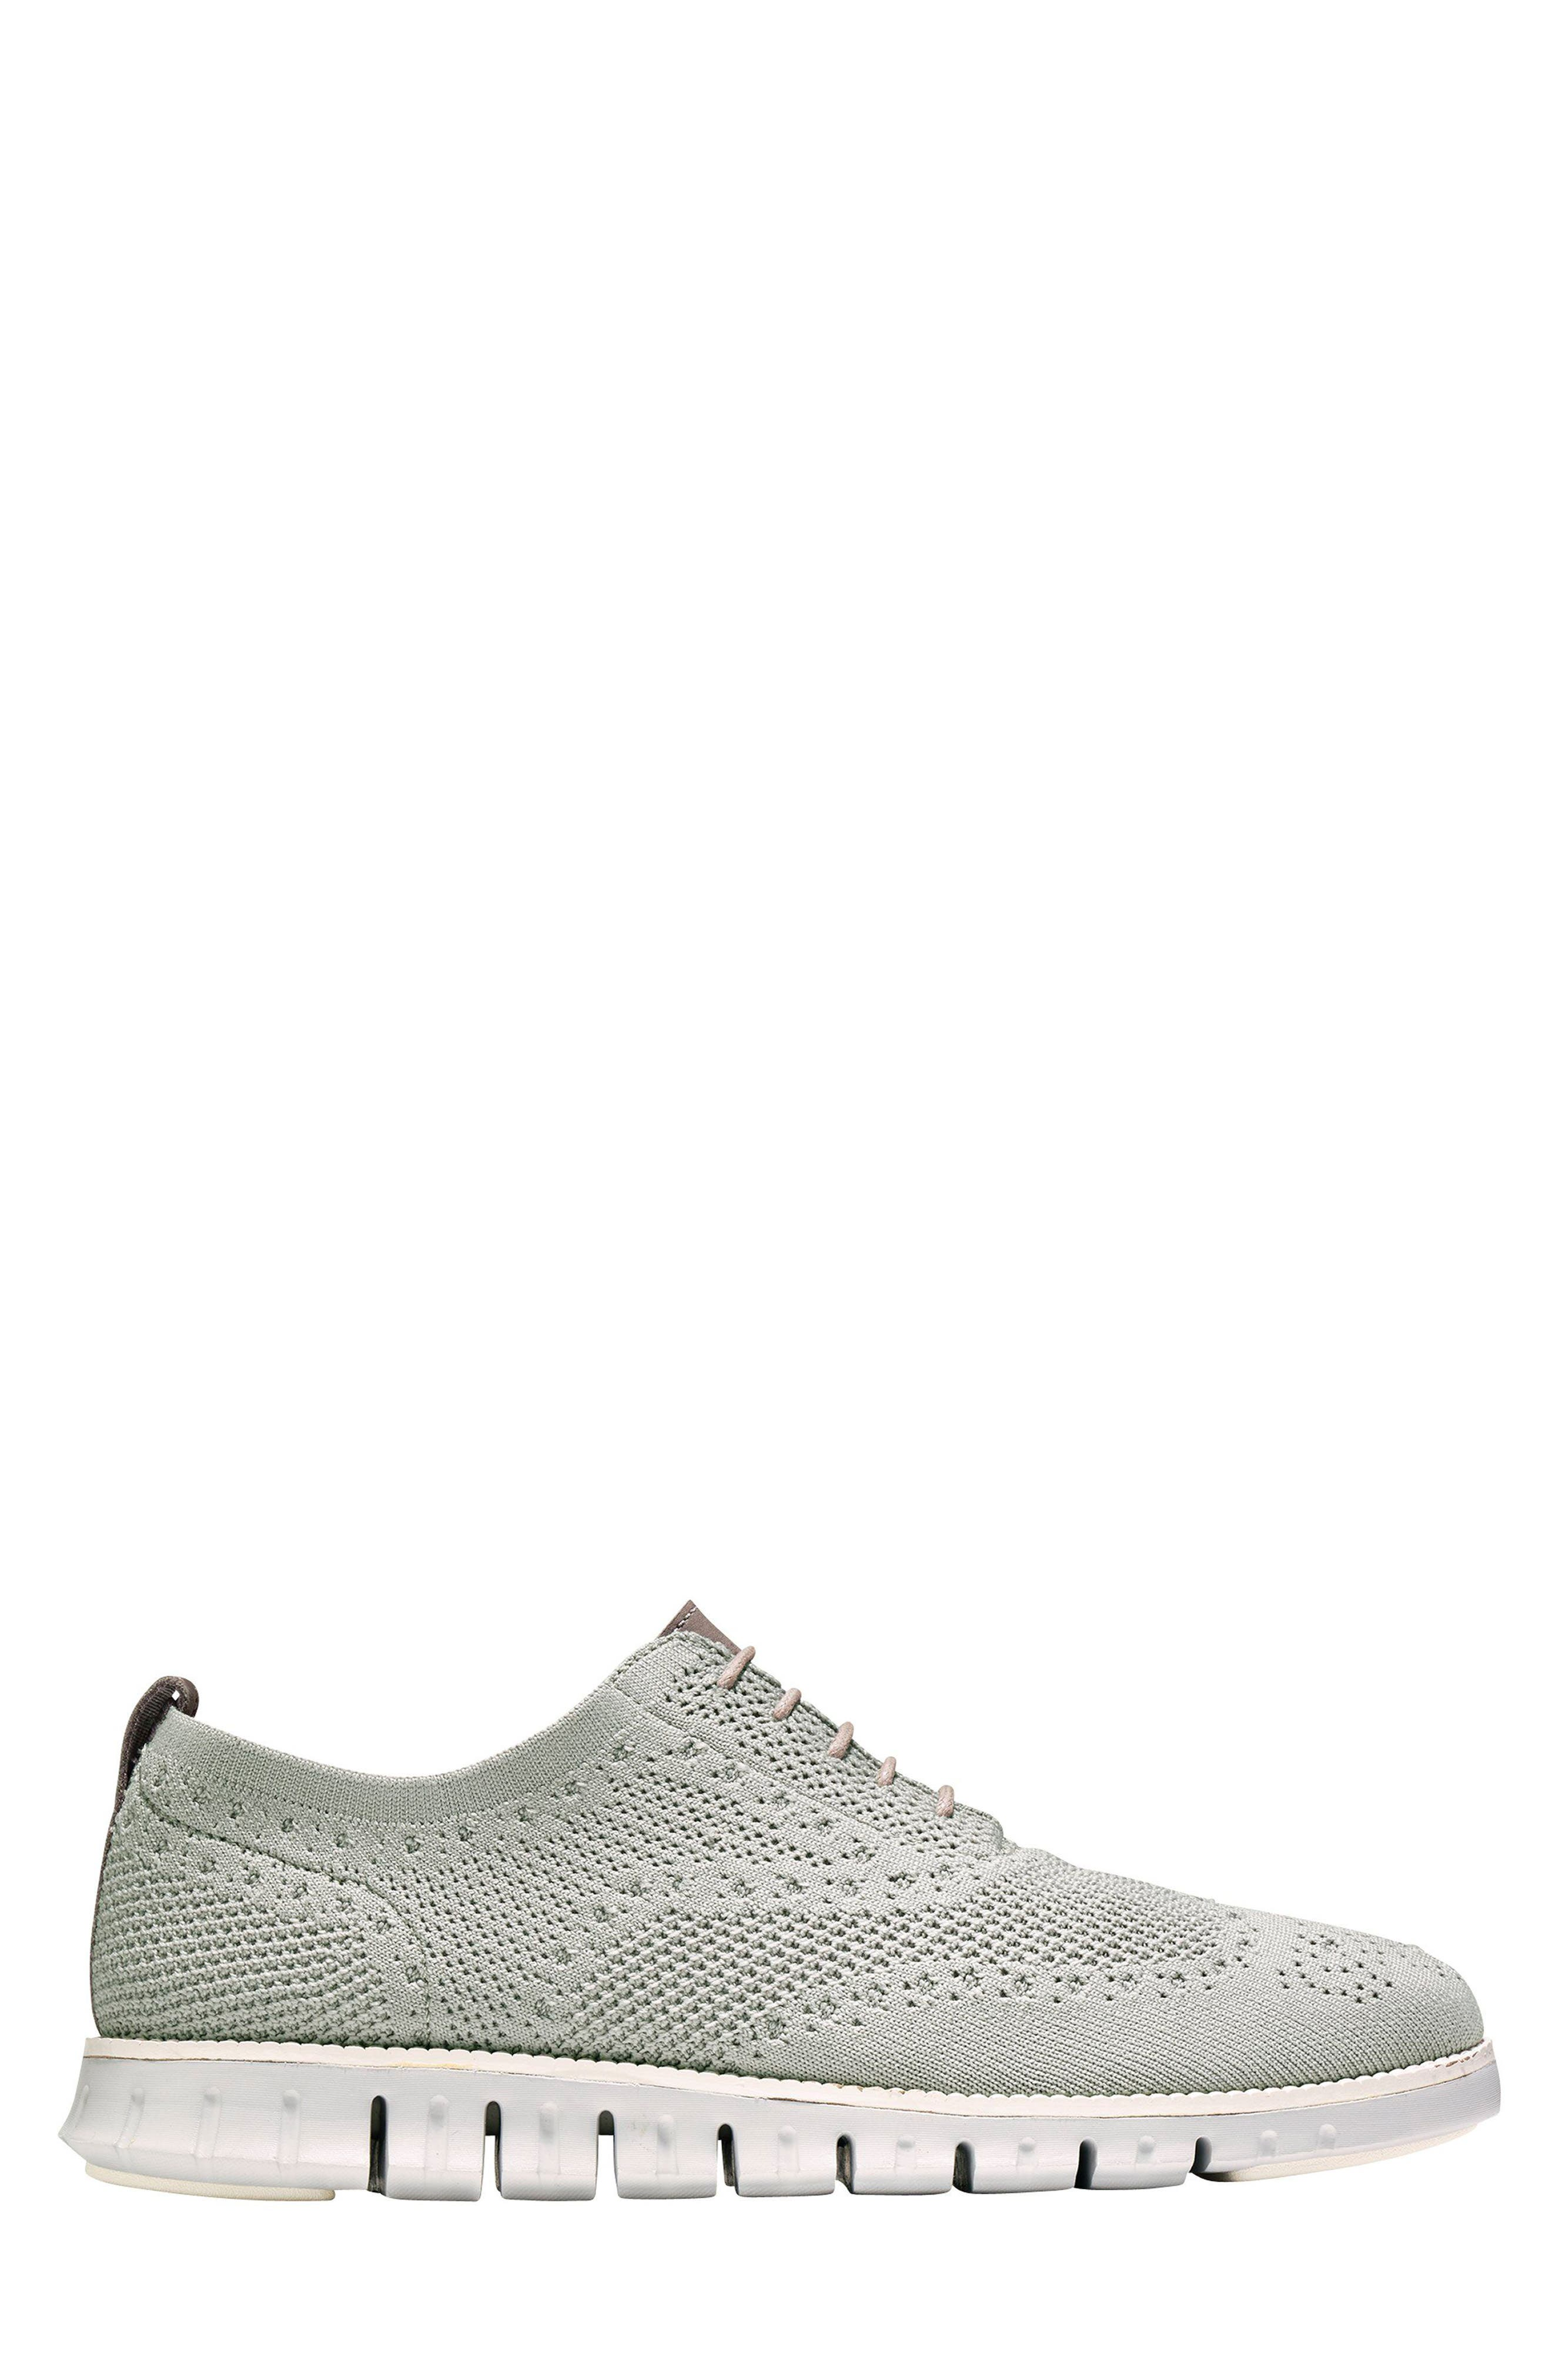 ZeroGrand Stitch-lite Wingtip Oxford,                             Alternate thumbnail 3, color,                             020